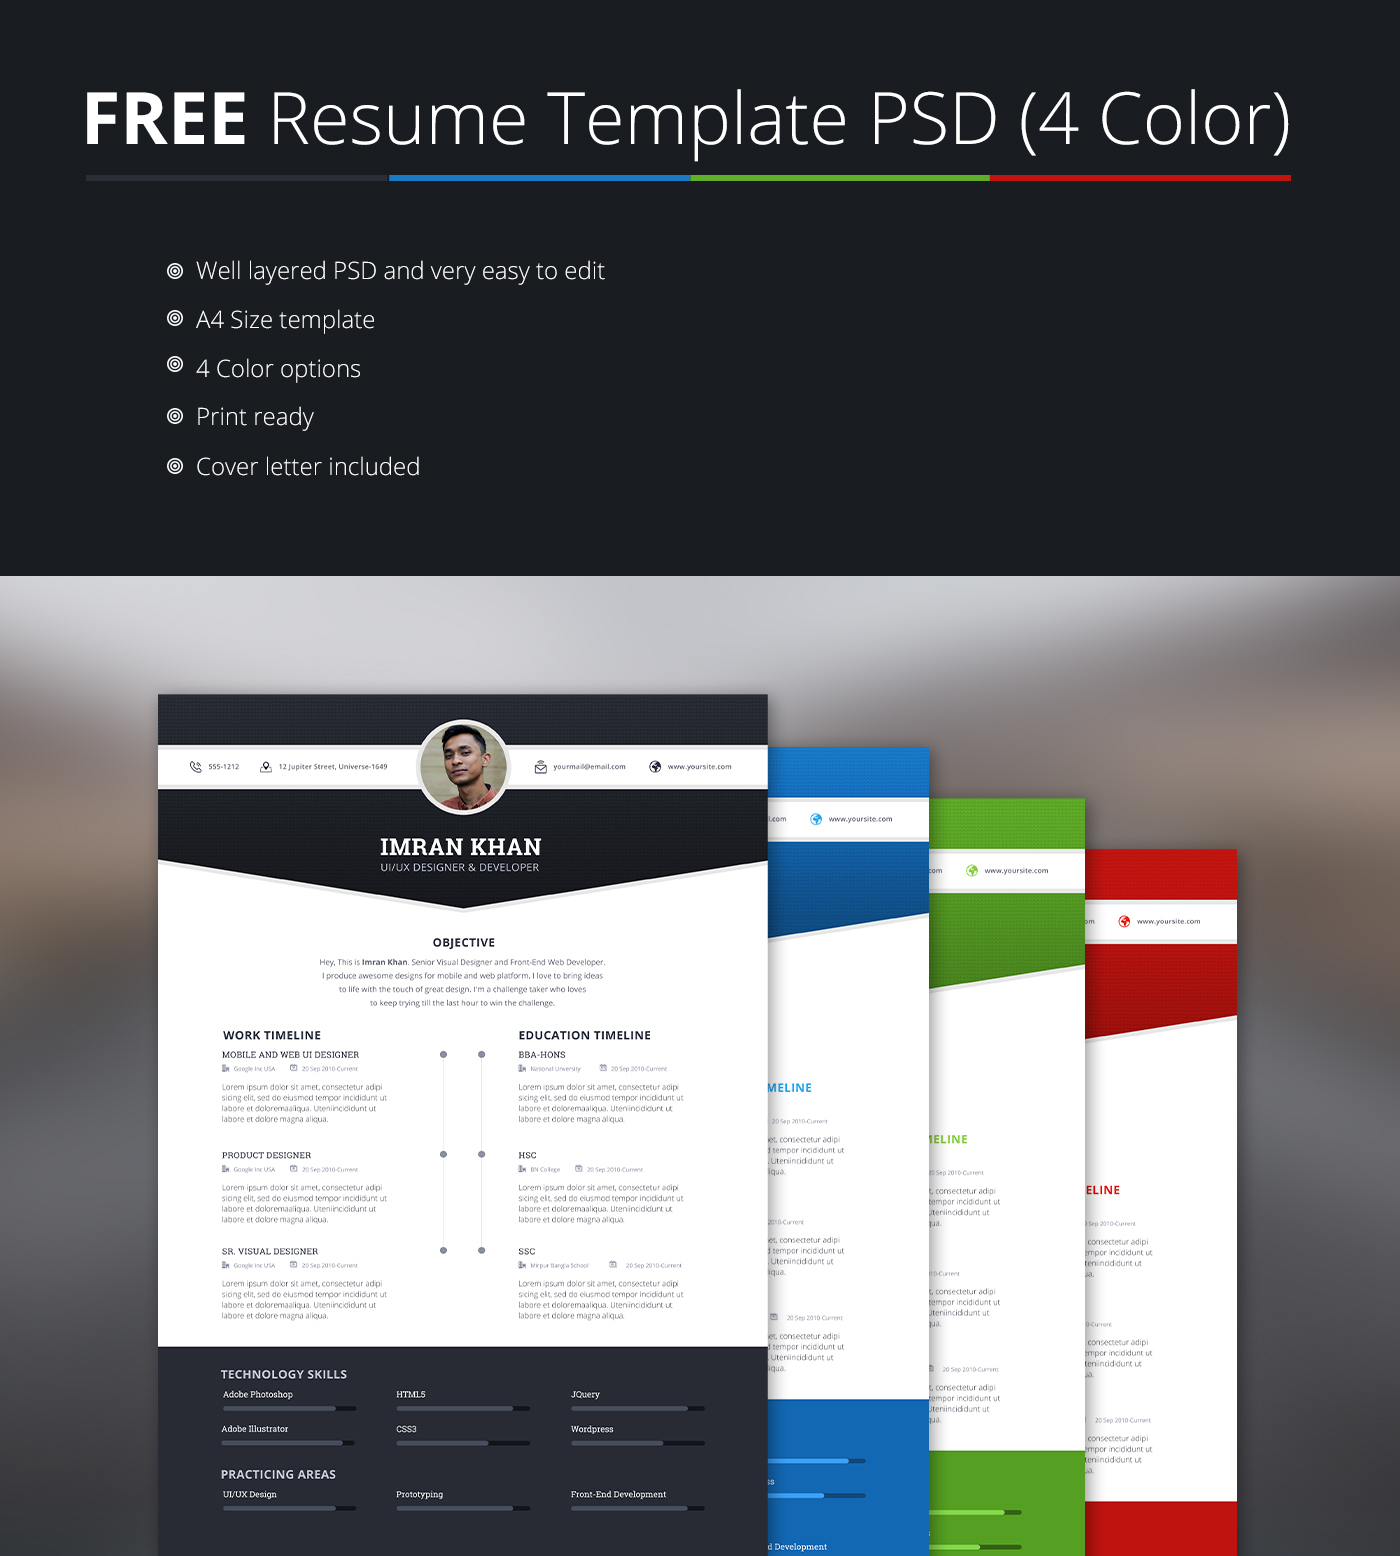 free resume template psd 4 colors on behance - Graphic Resume Templates Free